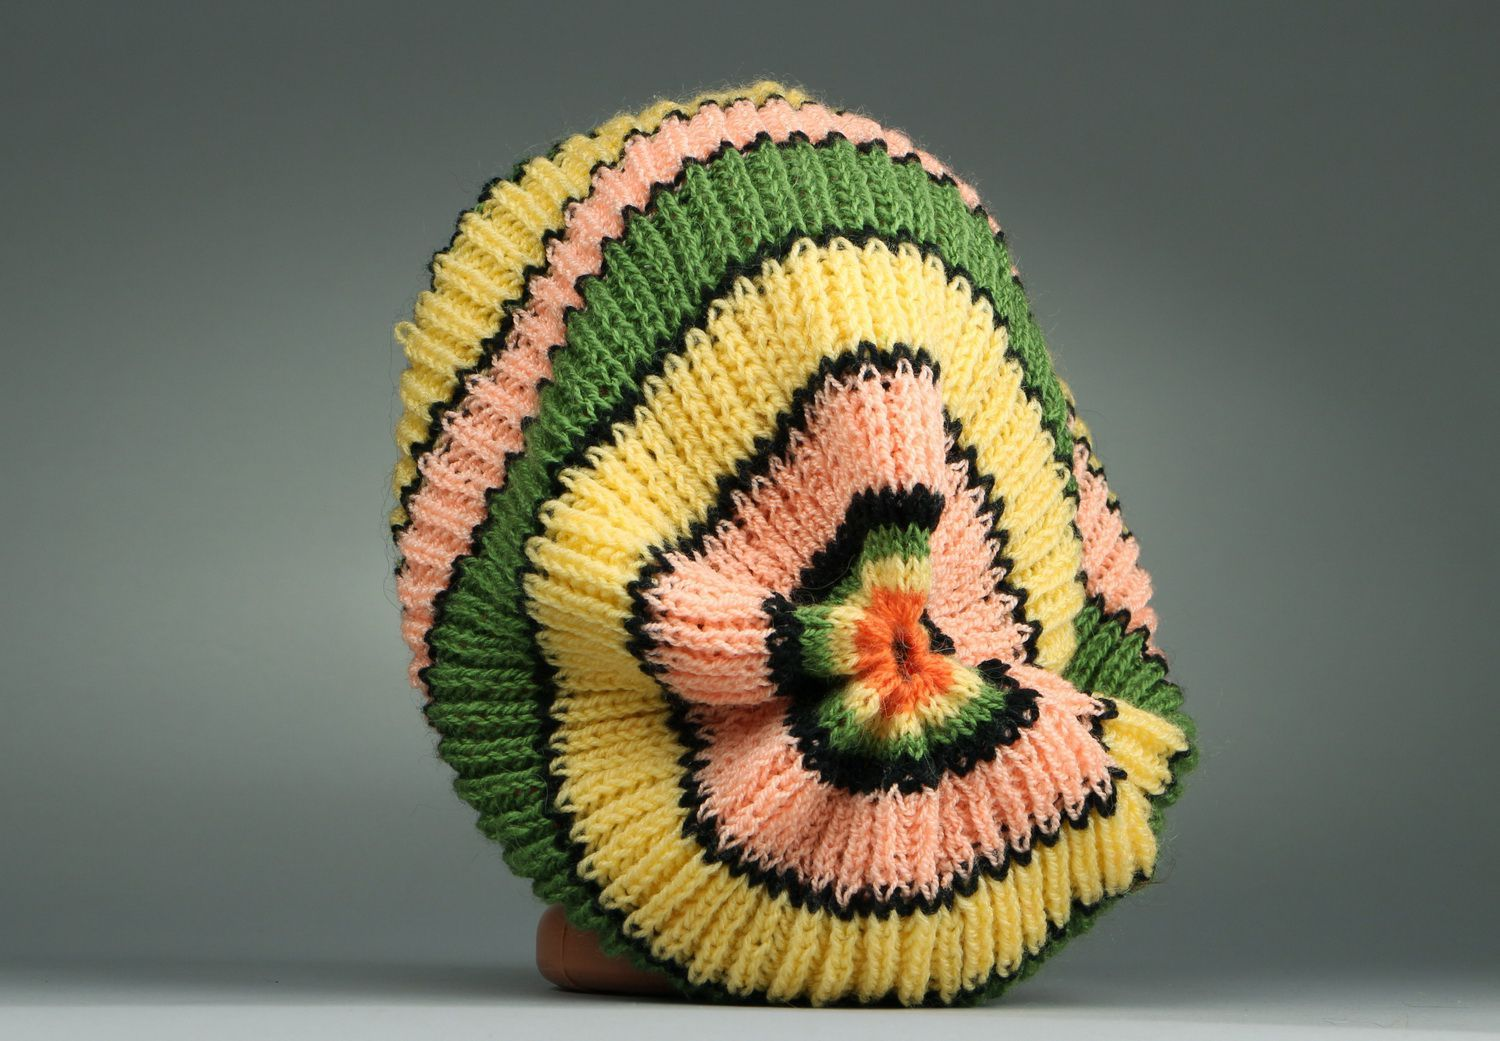 American knitted green & yellow beret photo 2